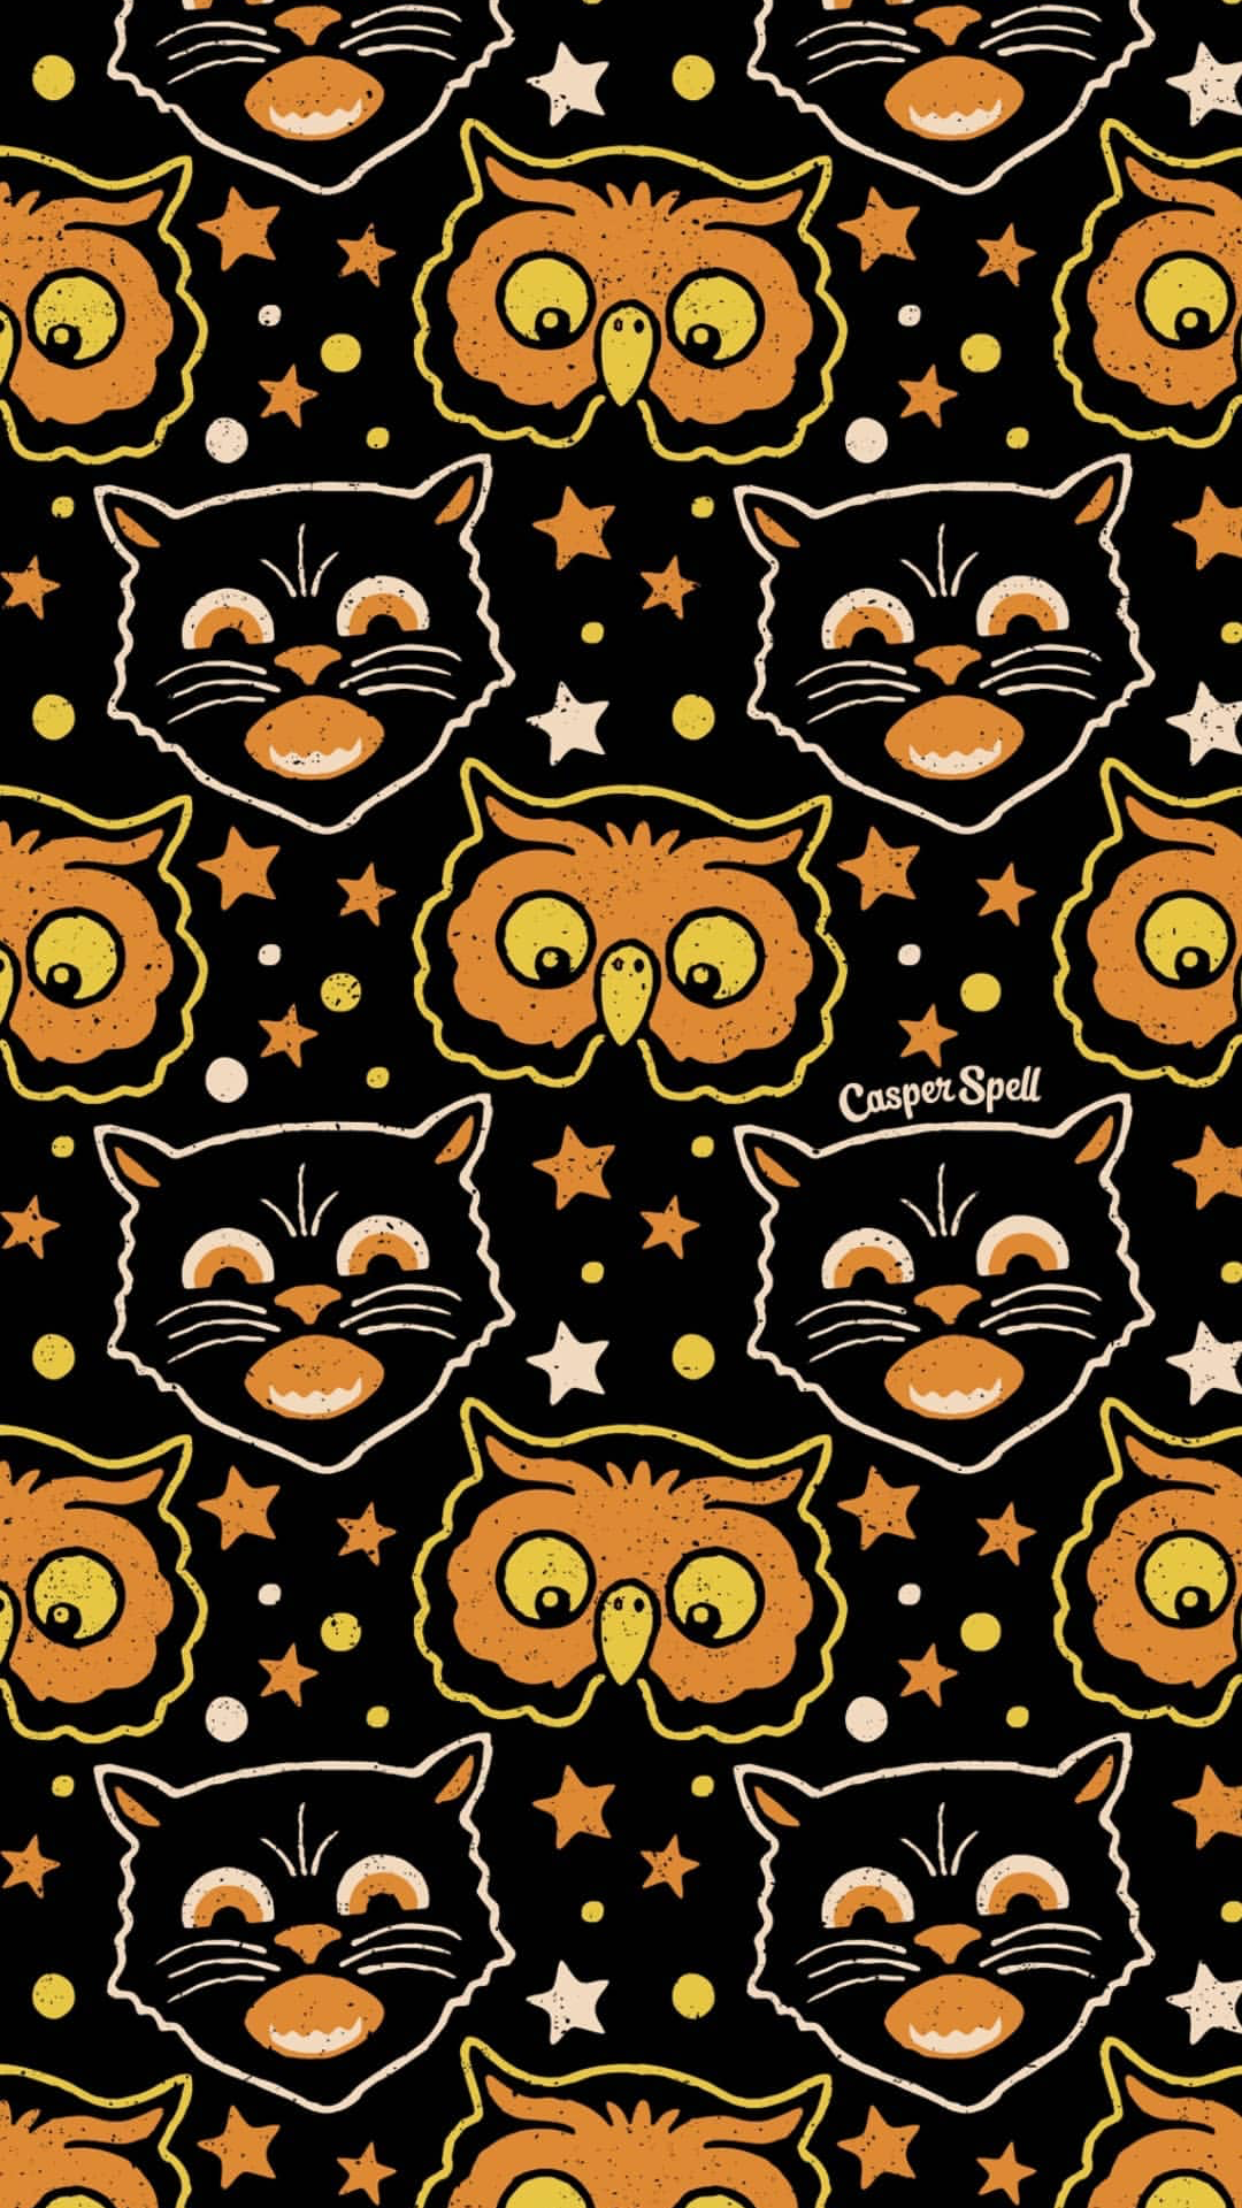 Retro Black Cat And Owl Halloween By Artist Casper Spell Wallpaper Background Lock Screen For Ipho Vintage Halloween Art Retro Halloween Halloween Wallpaper